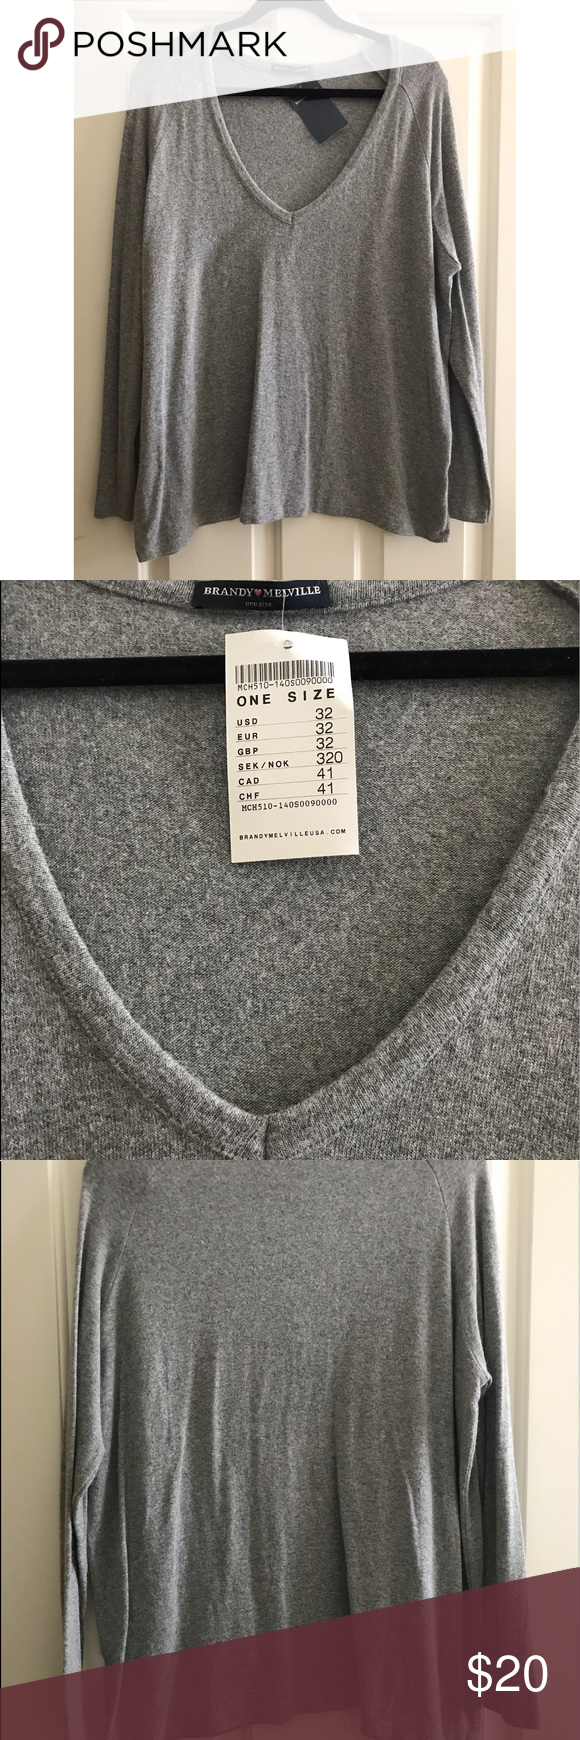 Brandy Melville grey vneck lightweight sweater NWT  0d8718b2b